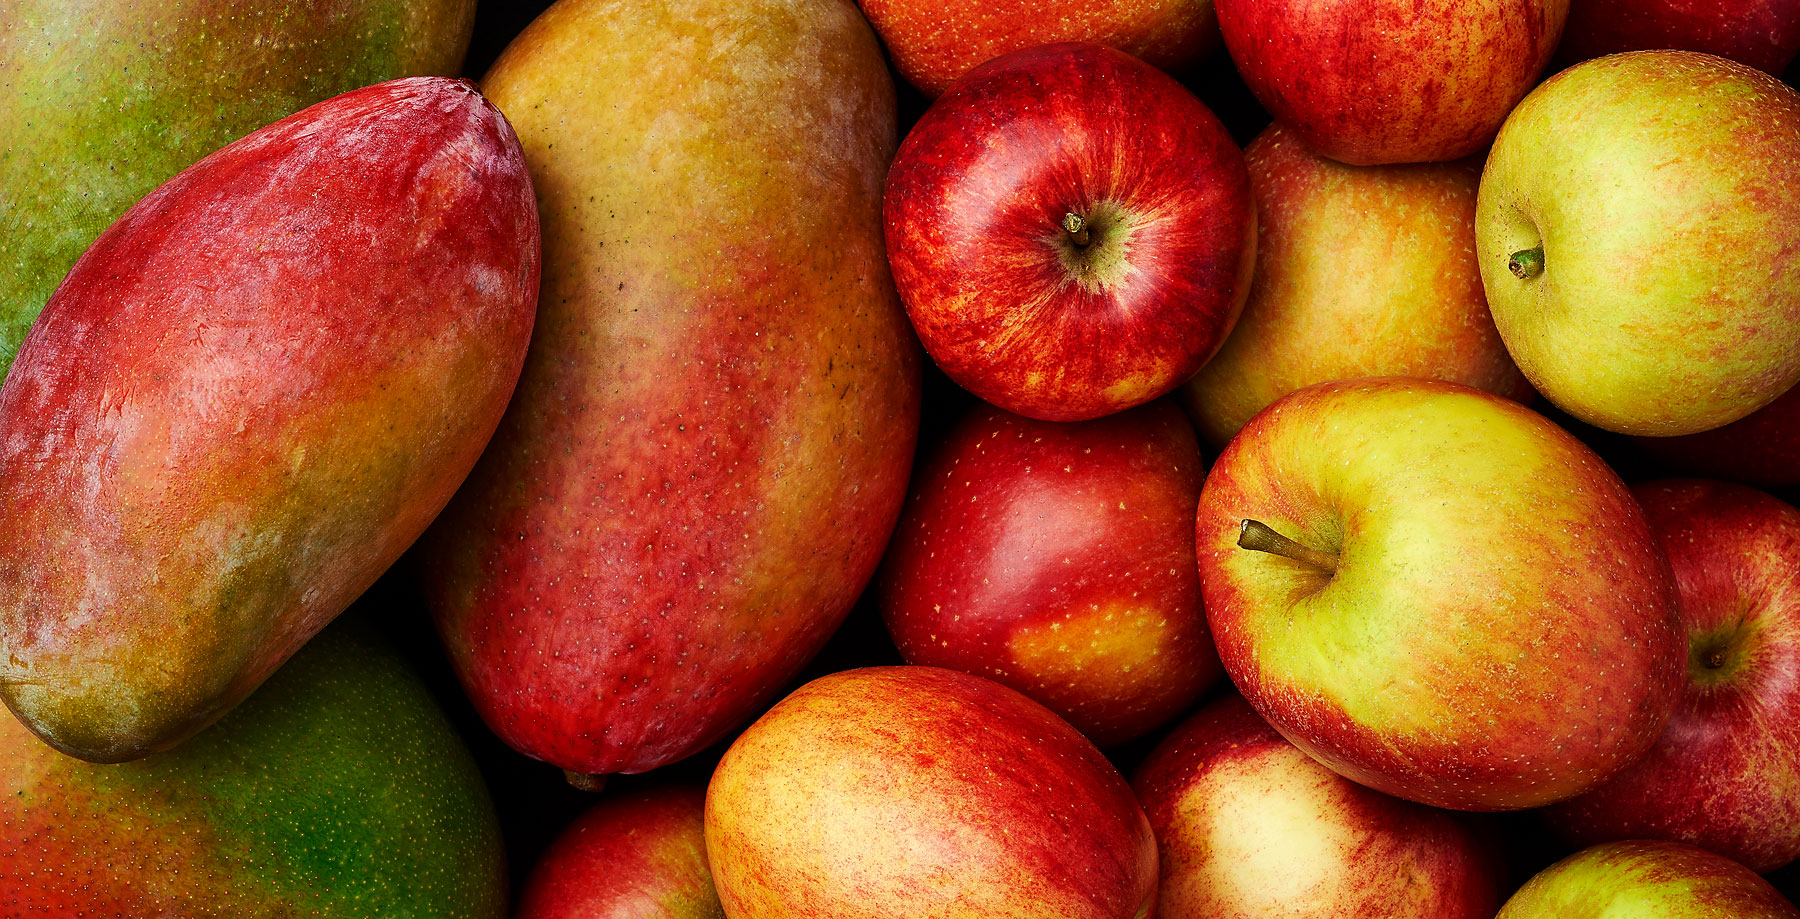 Mangoes and apples